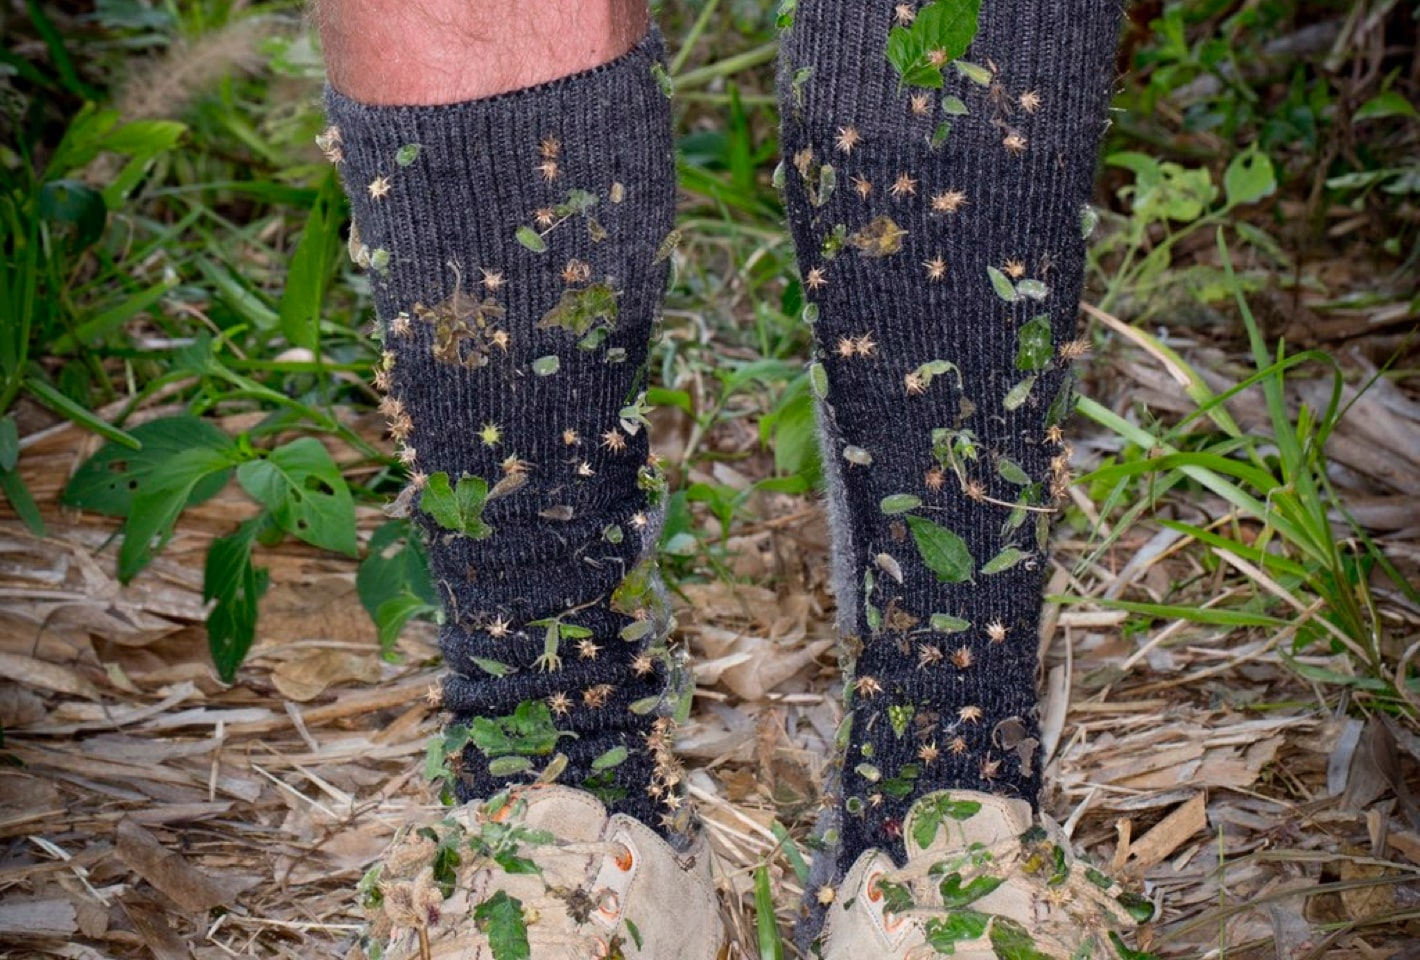 socks covered in rockachaws